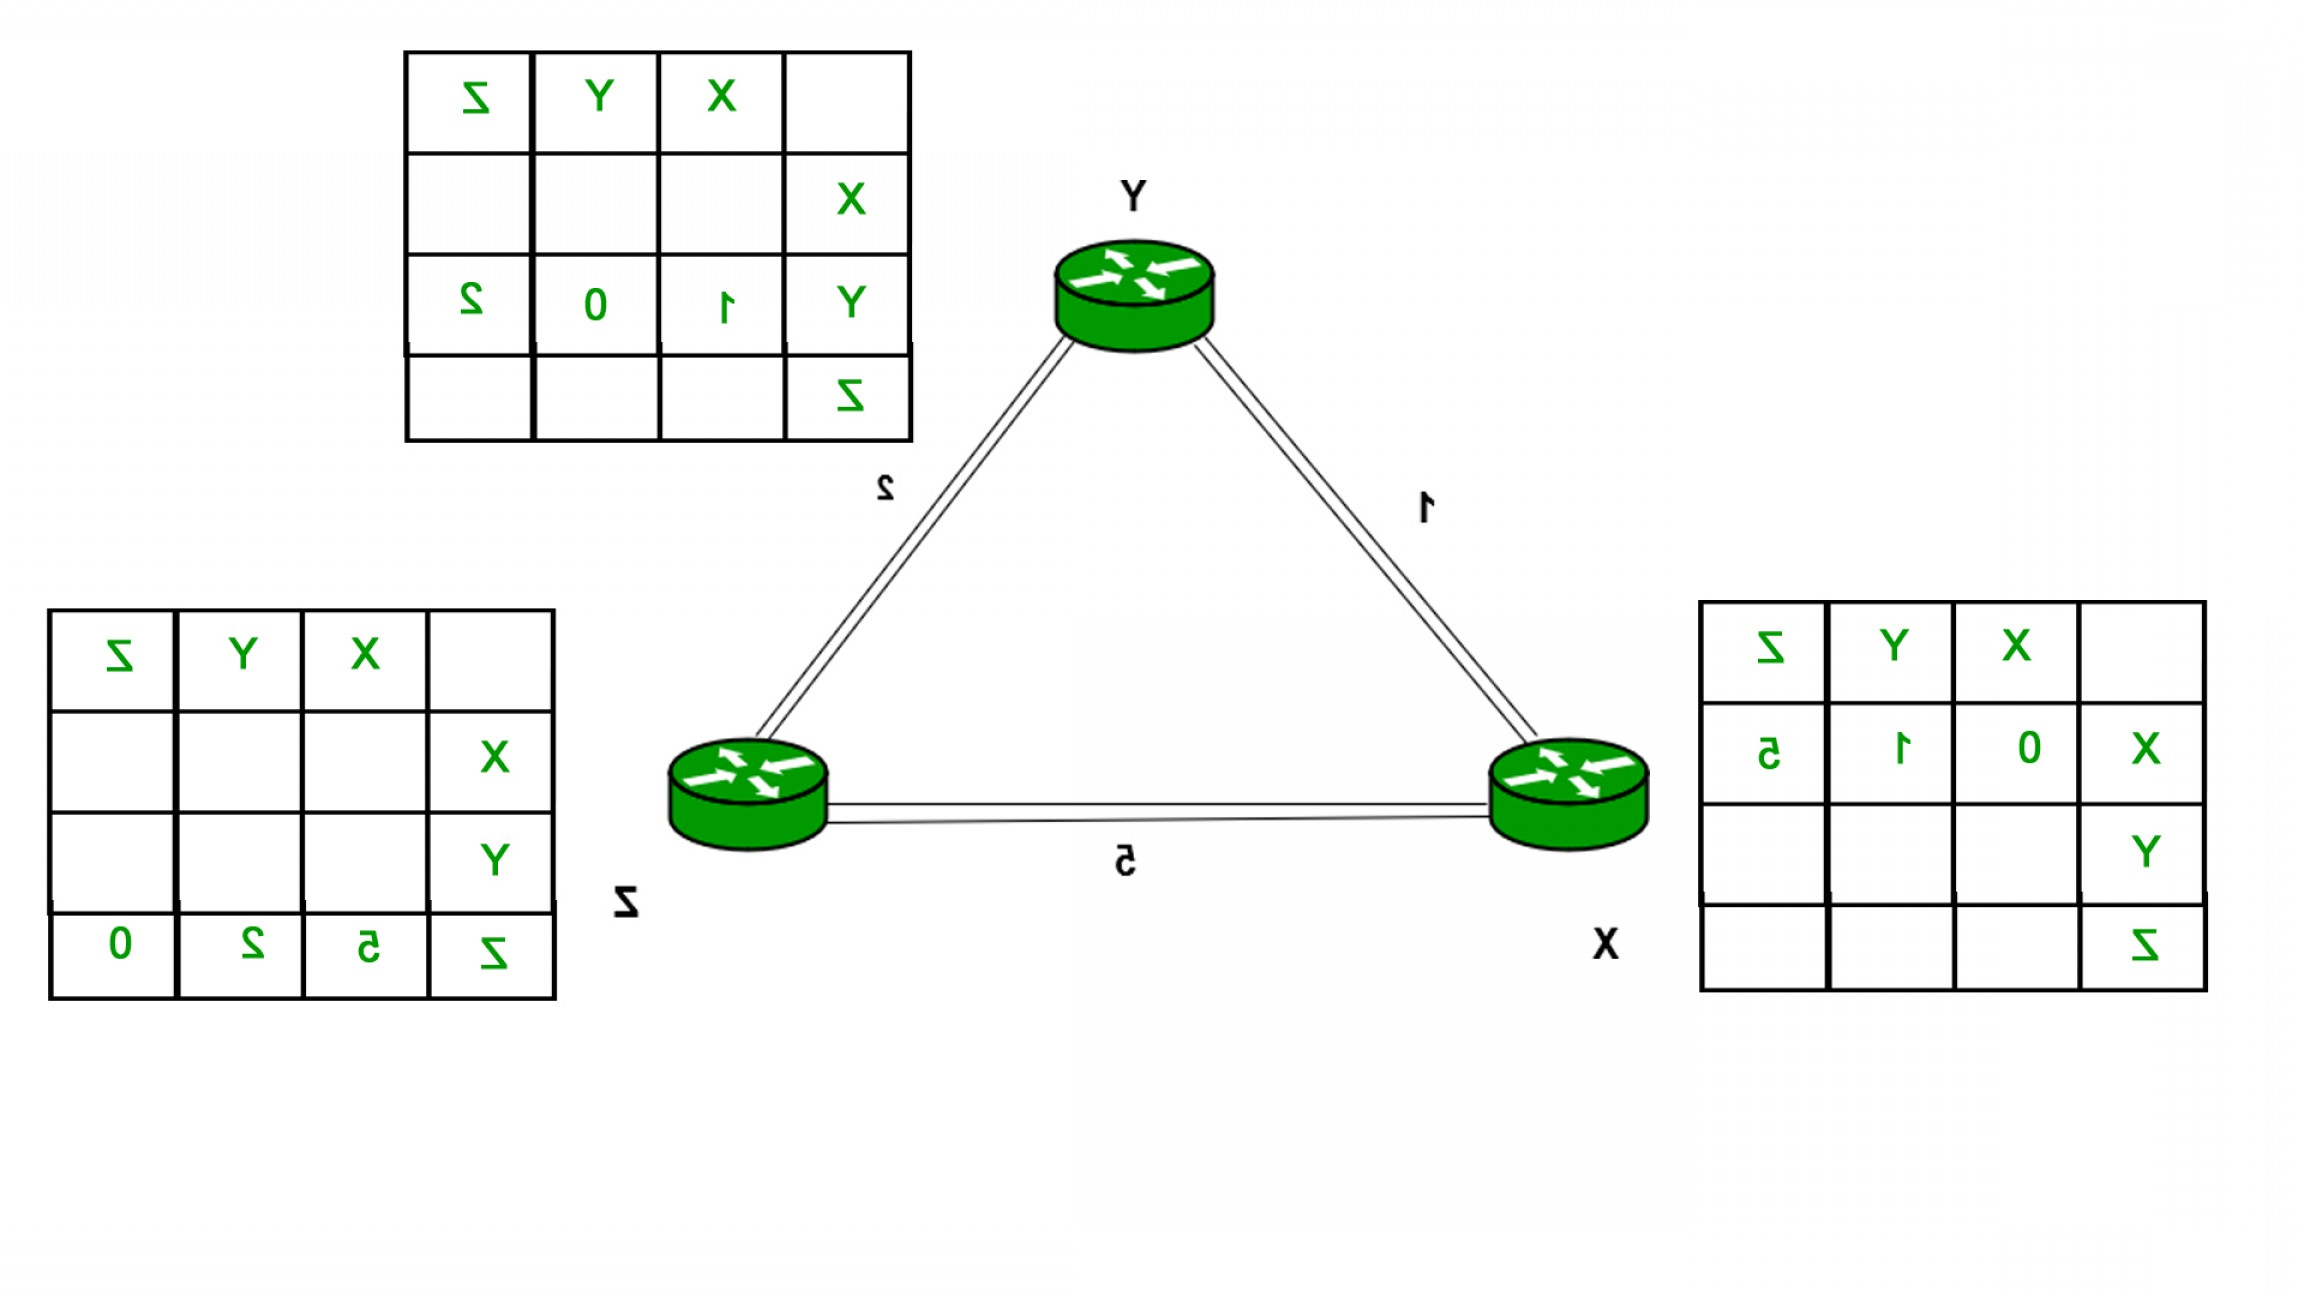 Adding Two Vectors Engineering: Computer Network Routing Protocols Set Distance Vector Routing